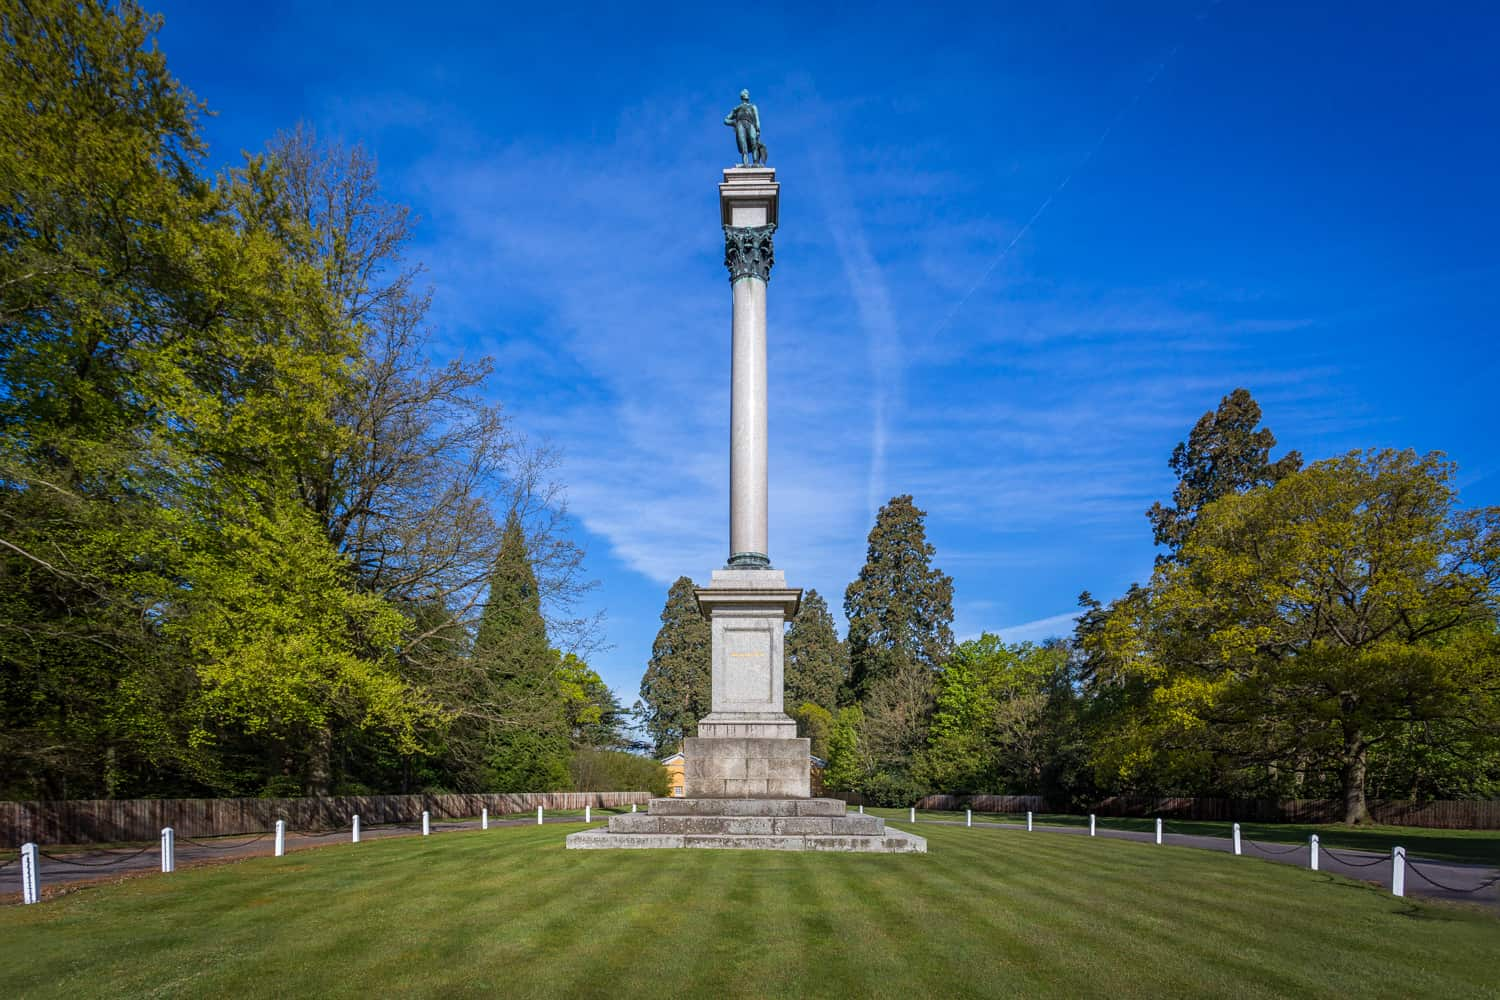 Wellington Memorial Image 1 by Rick McEvoy Architectural Photographer